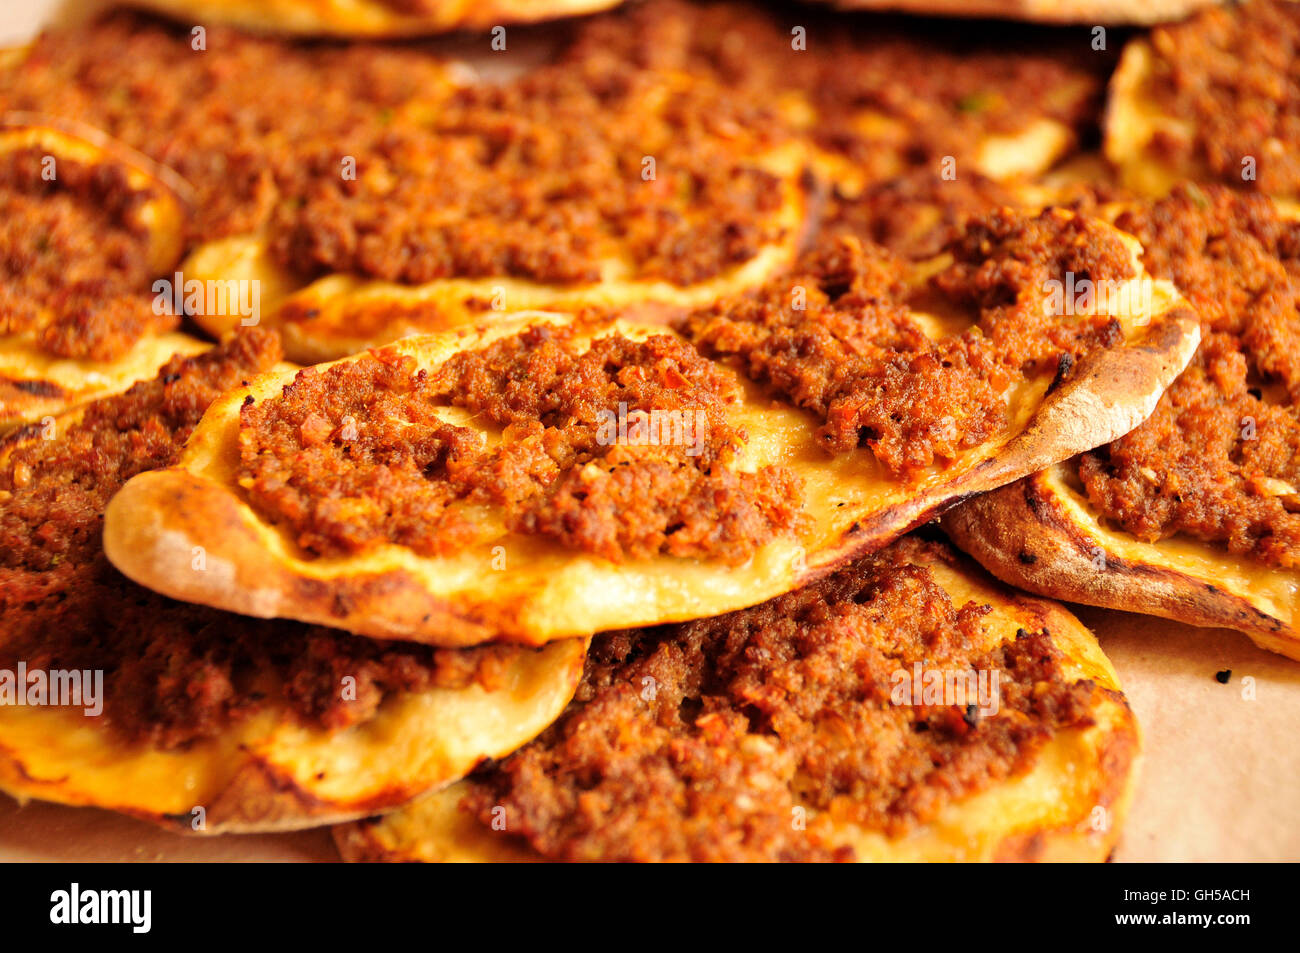 https://c8.alamy.com/comp/GH5ACH/arab-pizza-with-minced-lamb-paprika-and-tomato-in-a-restaurant-in-GH5ACH.jpg